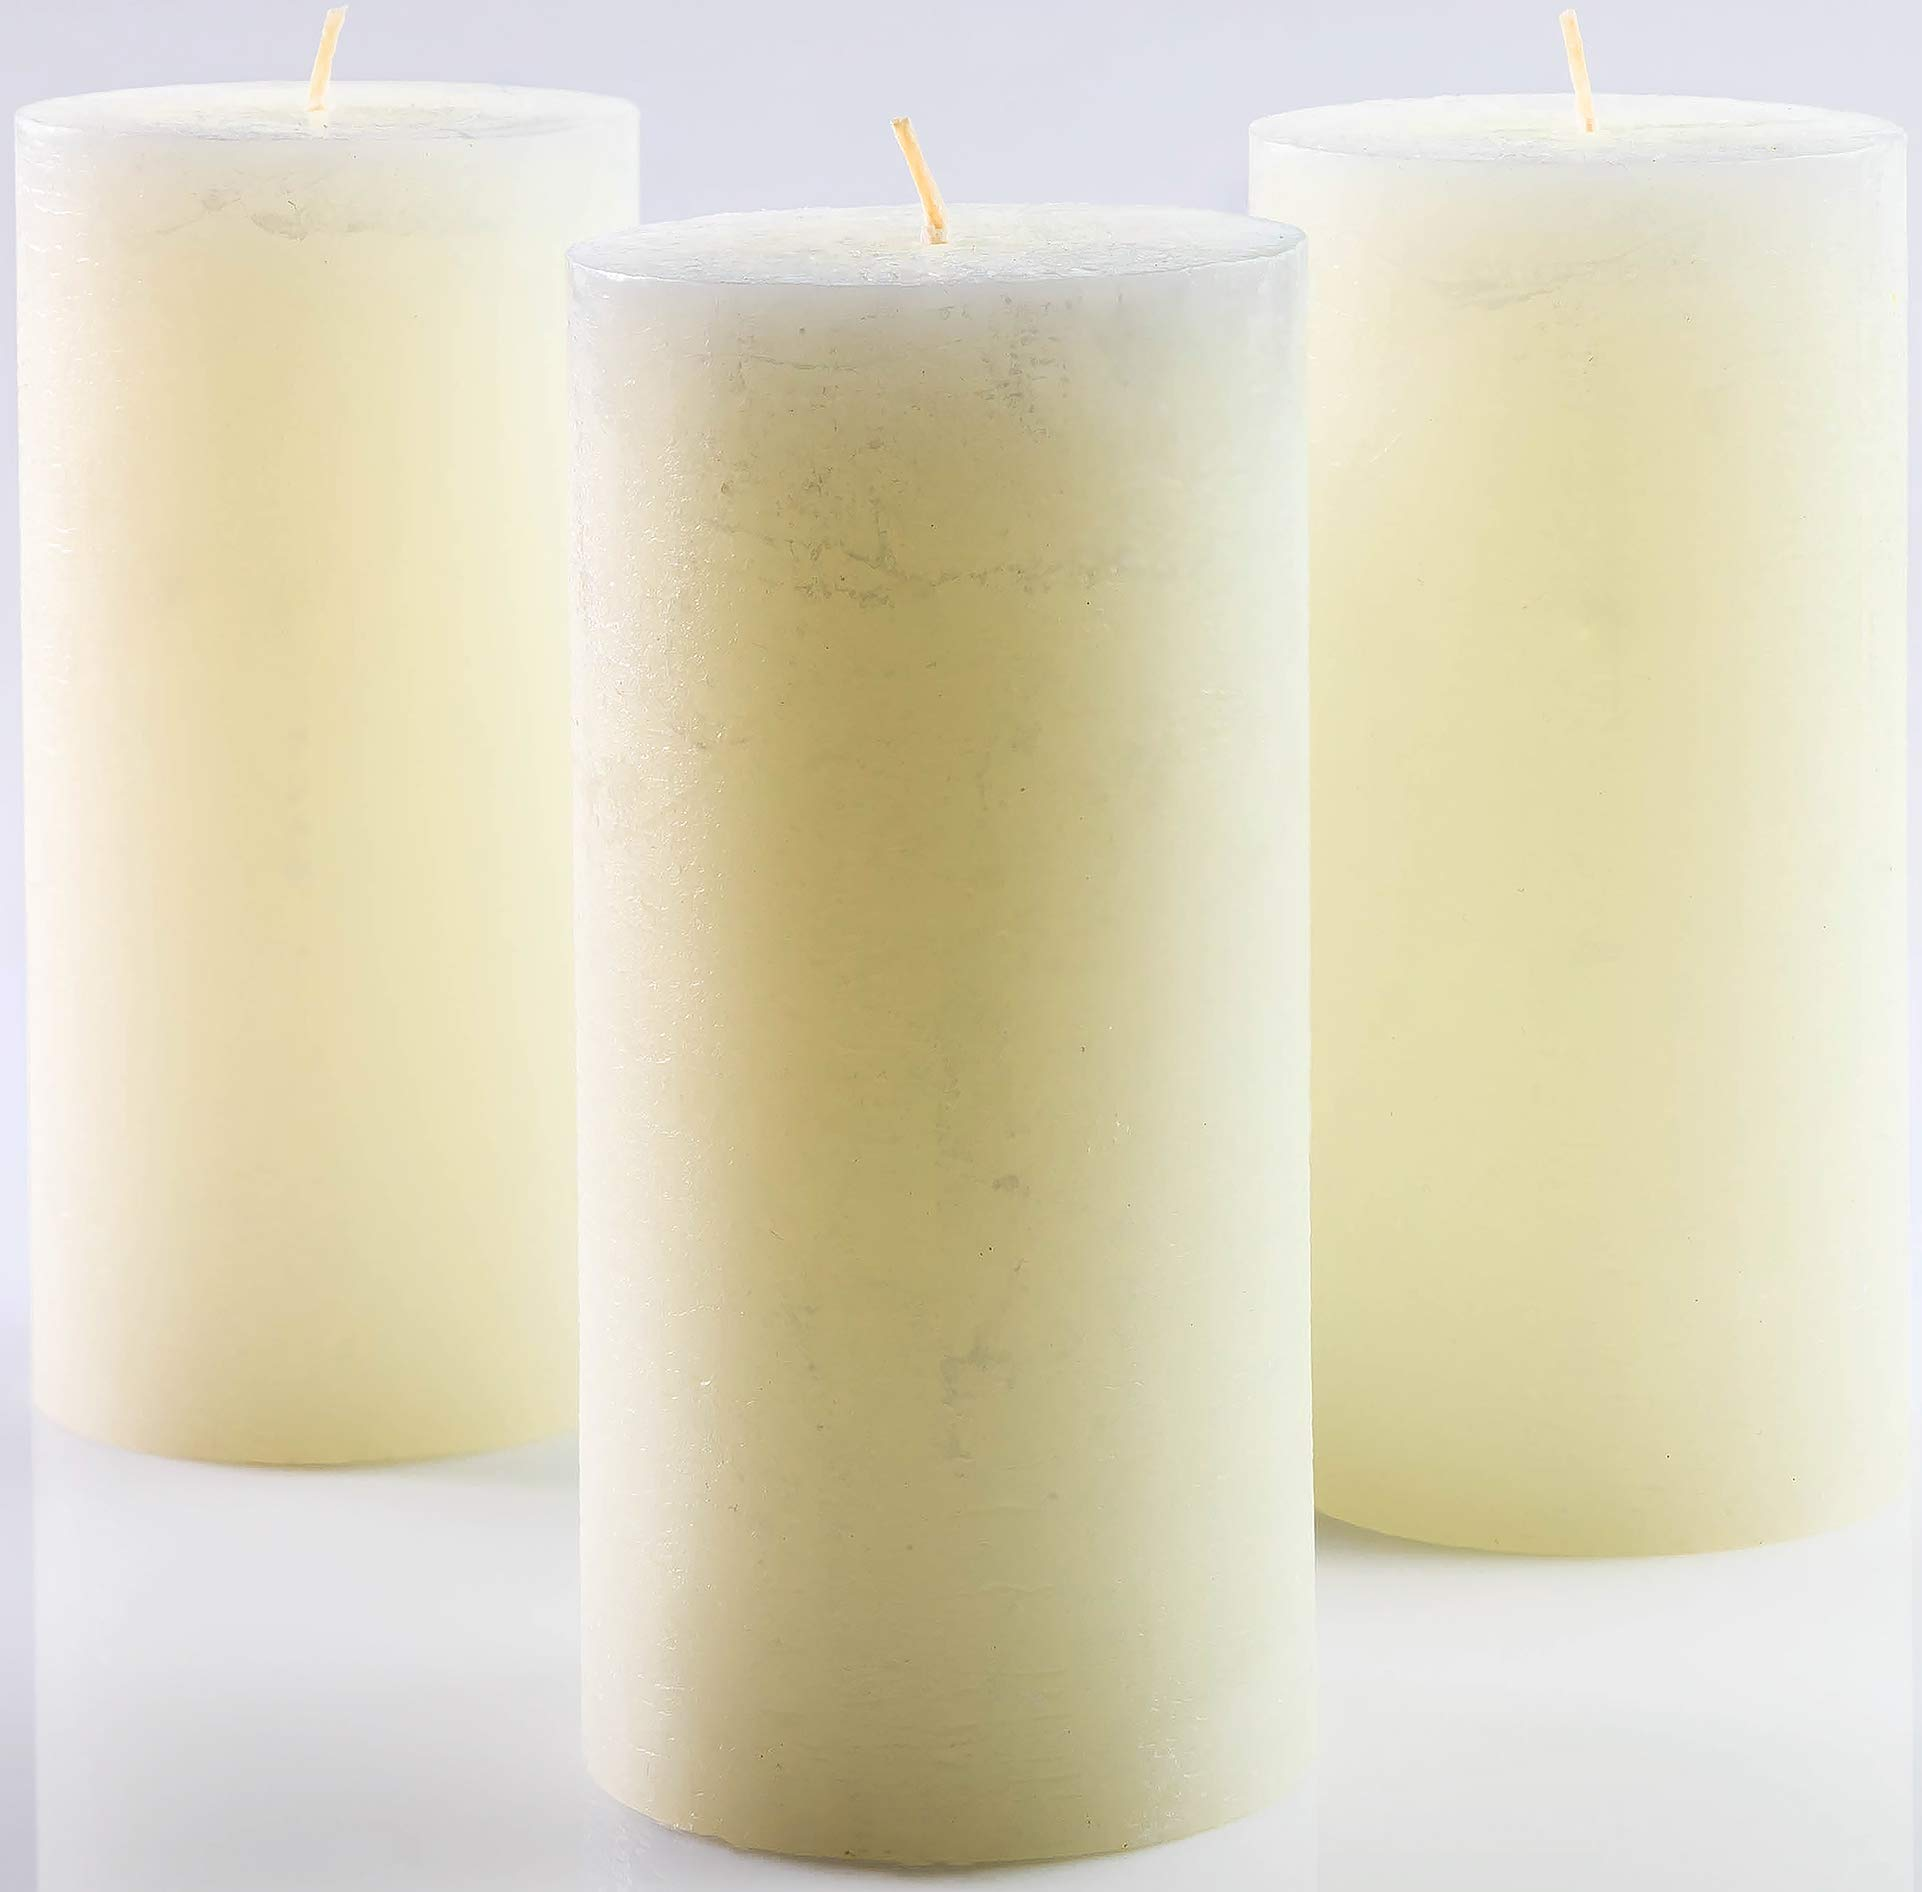 Set of 3 Ivory Unscented Pillar Candles 3 x 6 inch for Weddings Restaurant Home Decoration Spa Church Smokeless